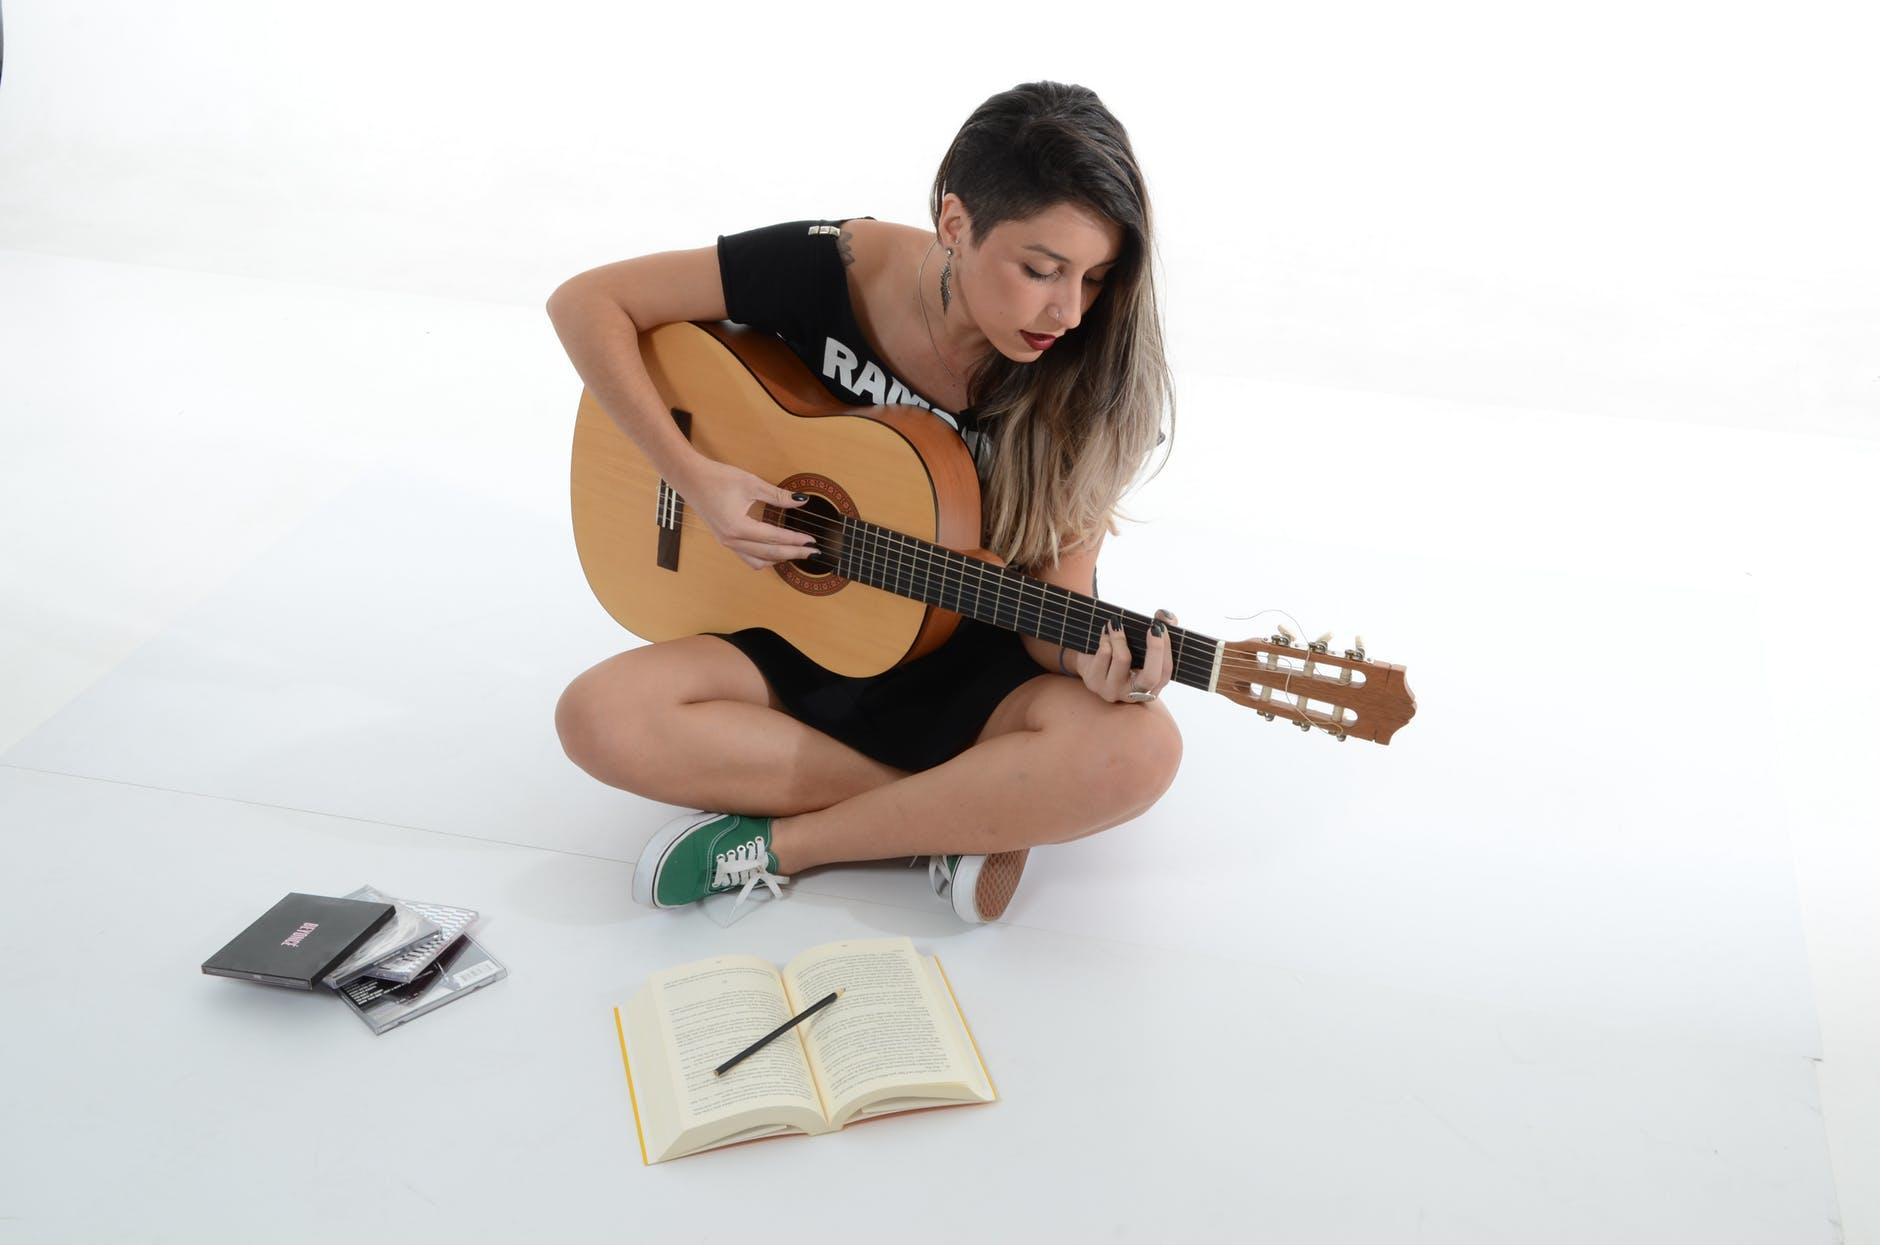 musician practicing